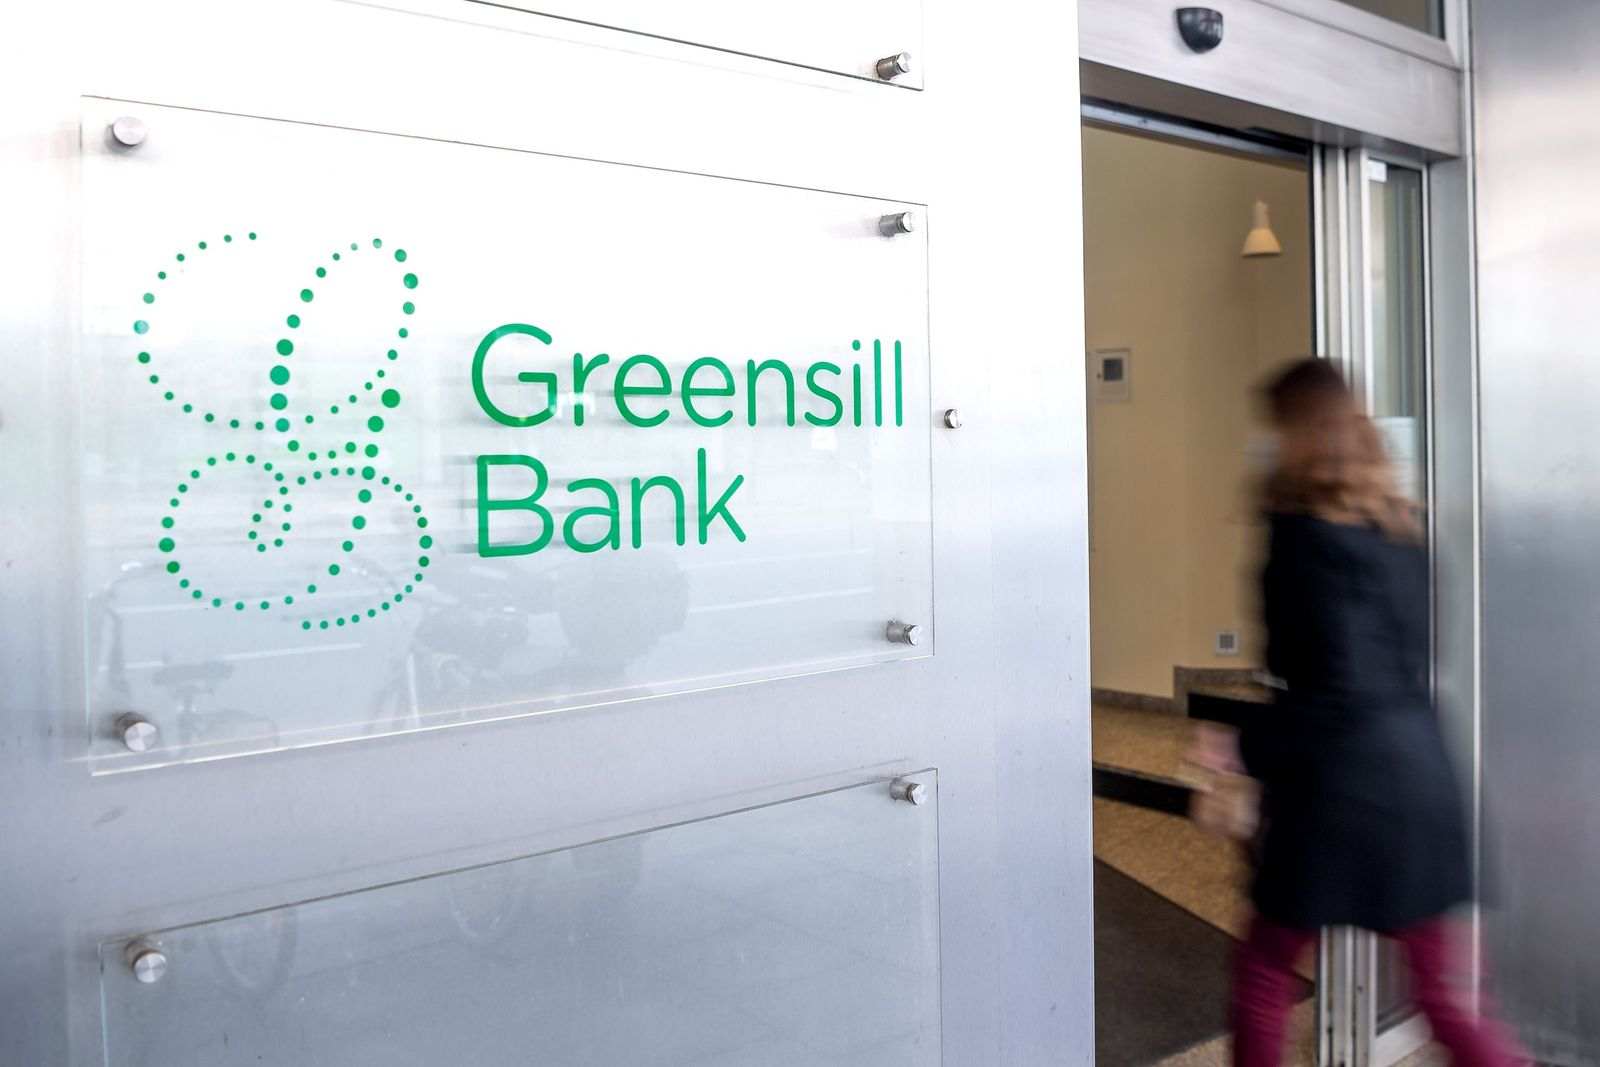 Greensill Bank